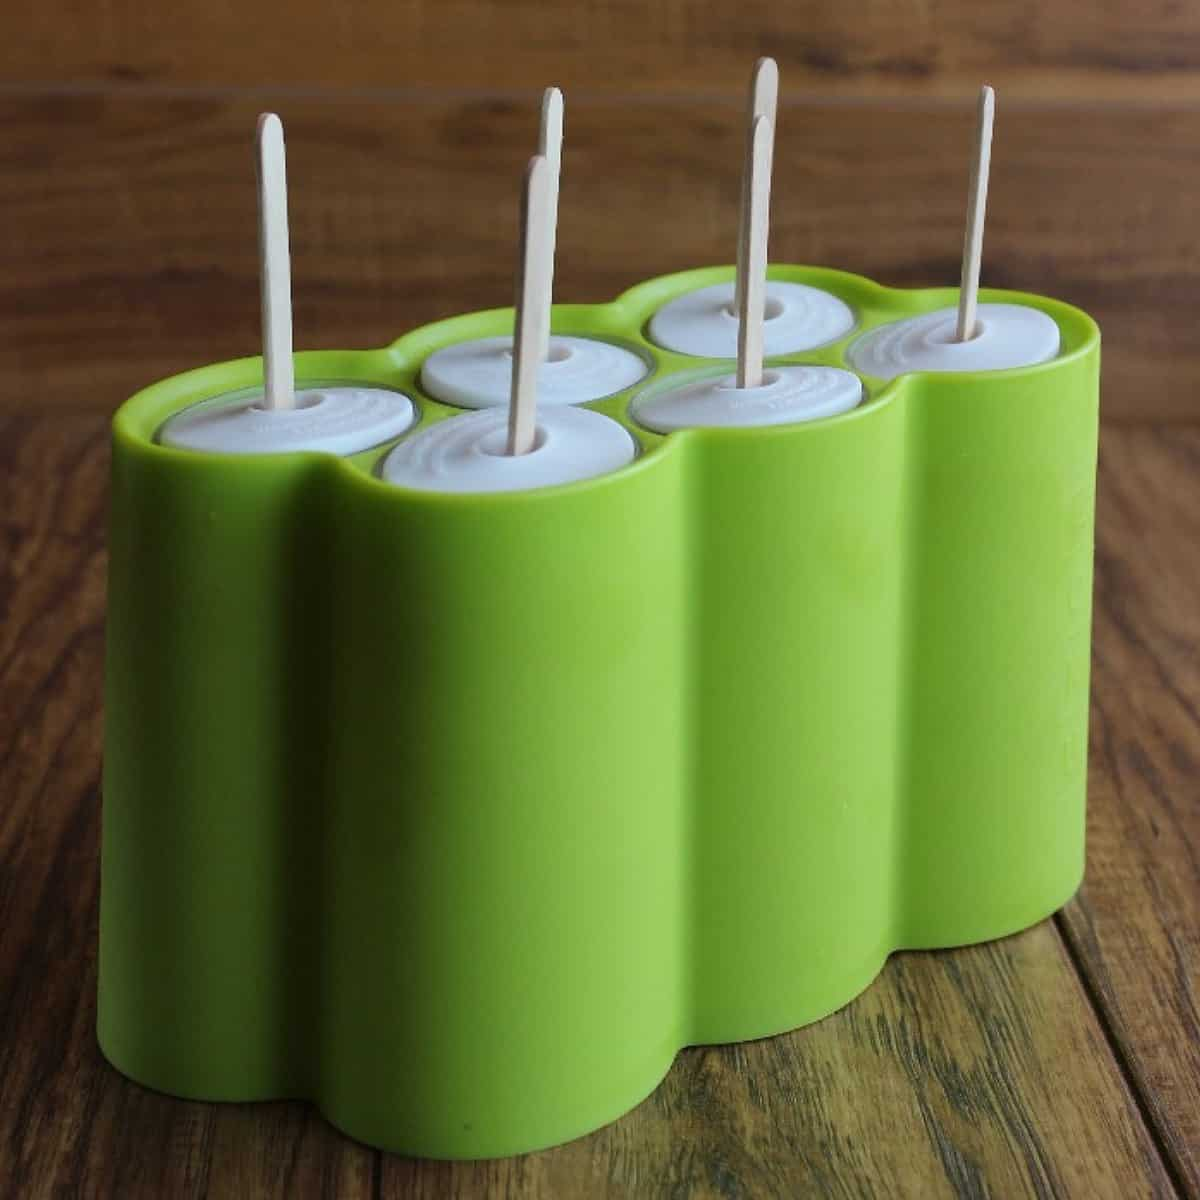 Side view of the popsicle mold in a lime green color with the wooden pop sticks coming out the top.